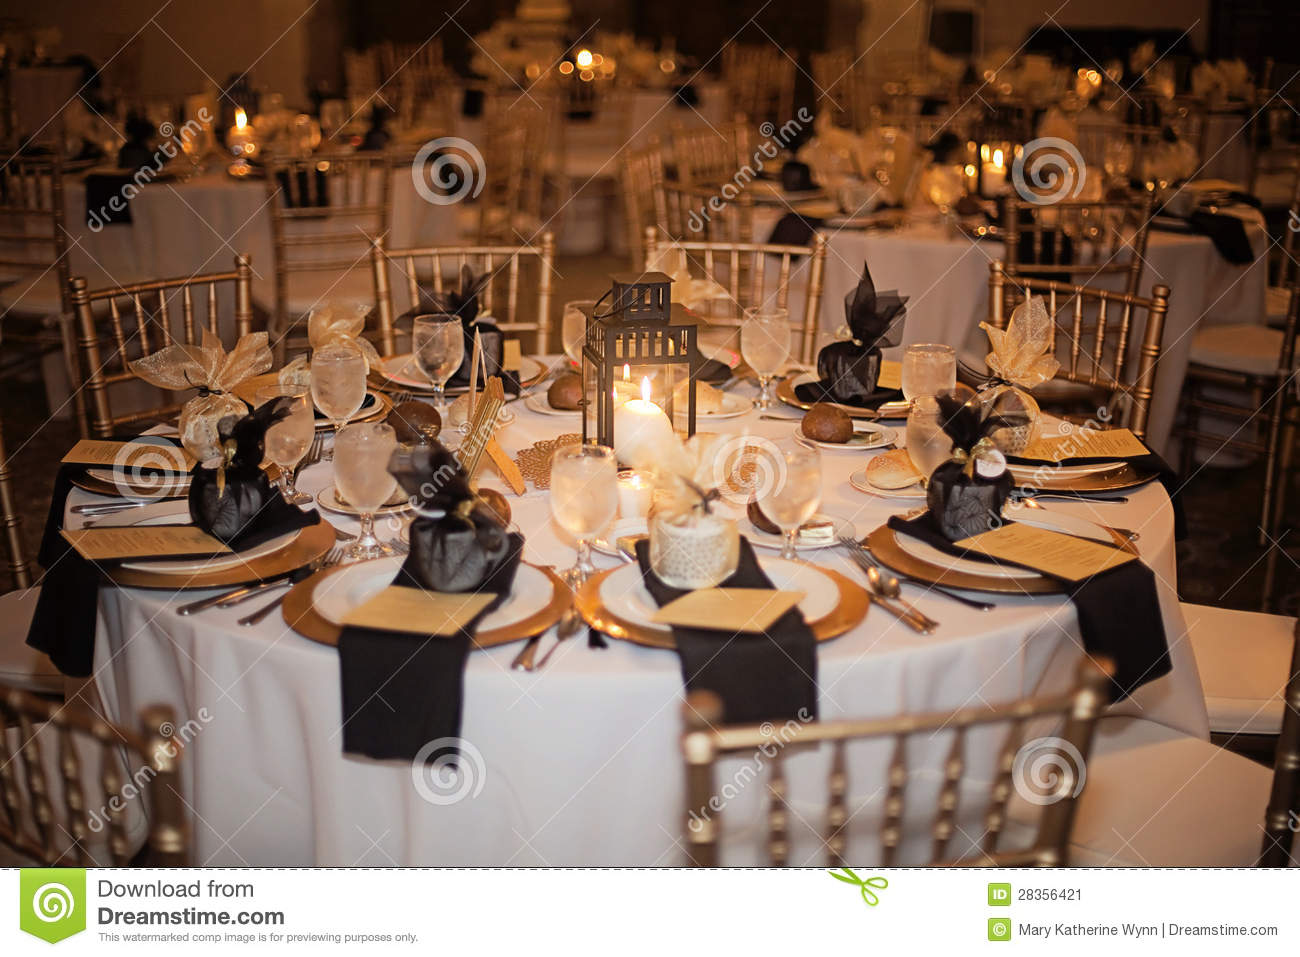 Evening only wedding reception venues